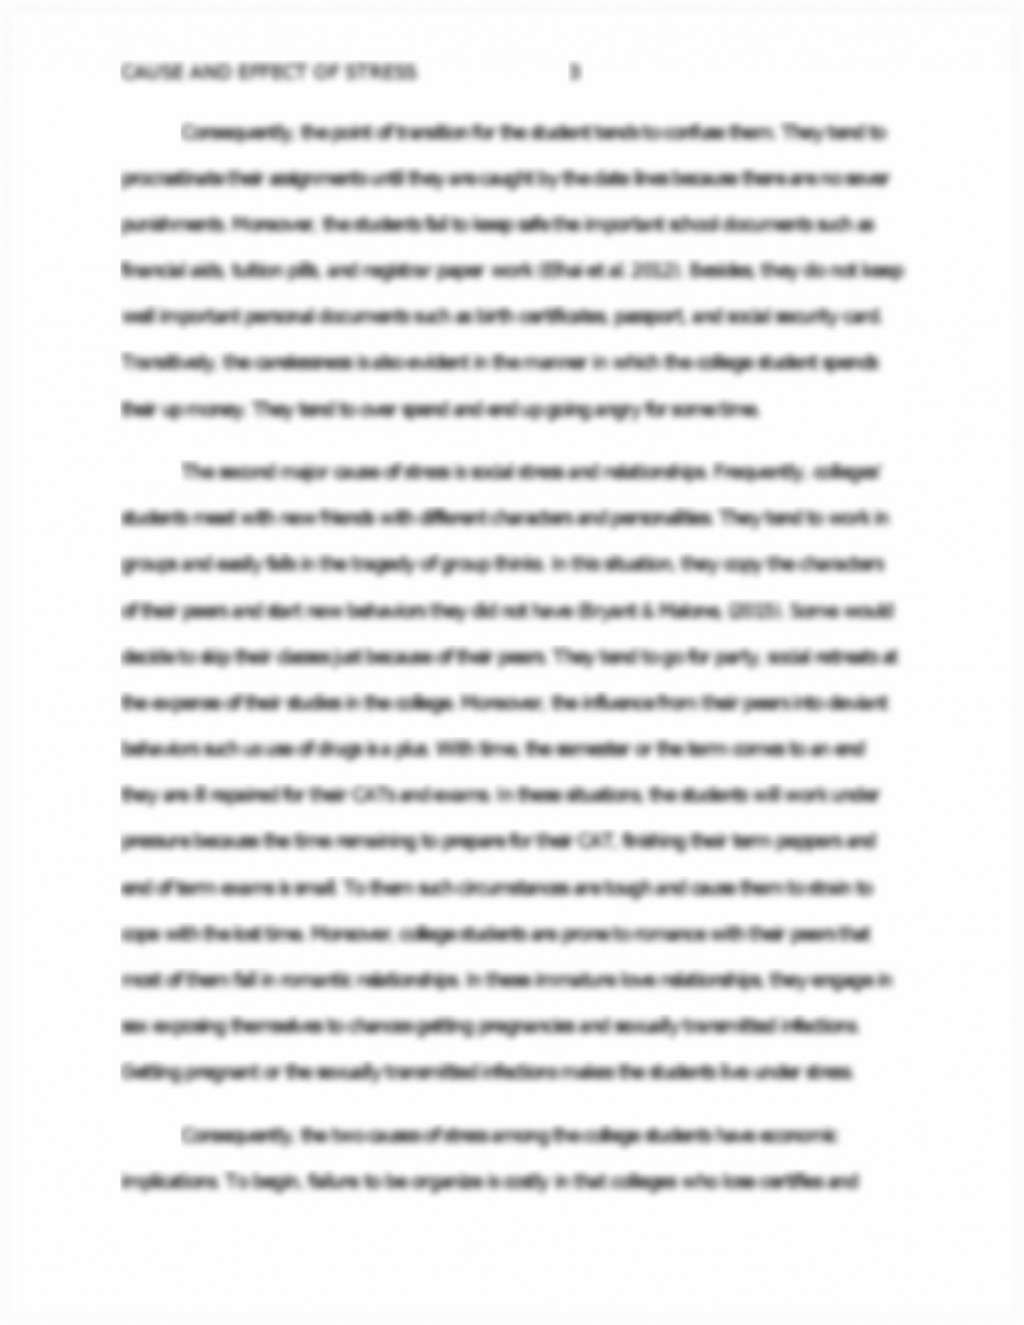 013 Essay Example Causes And Effects Of Stress Cause Effect On P College Students Surprising About Large